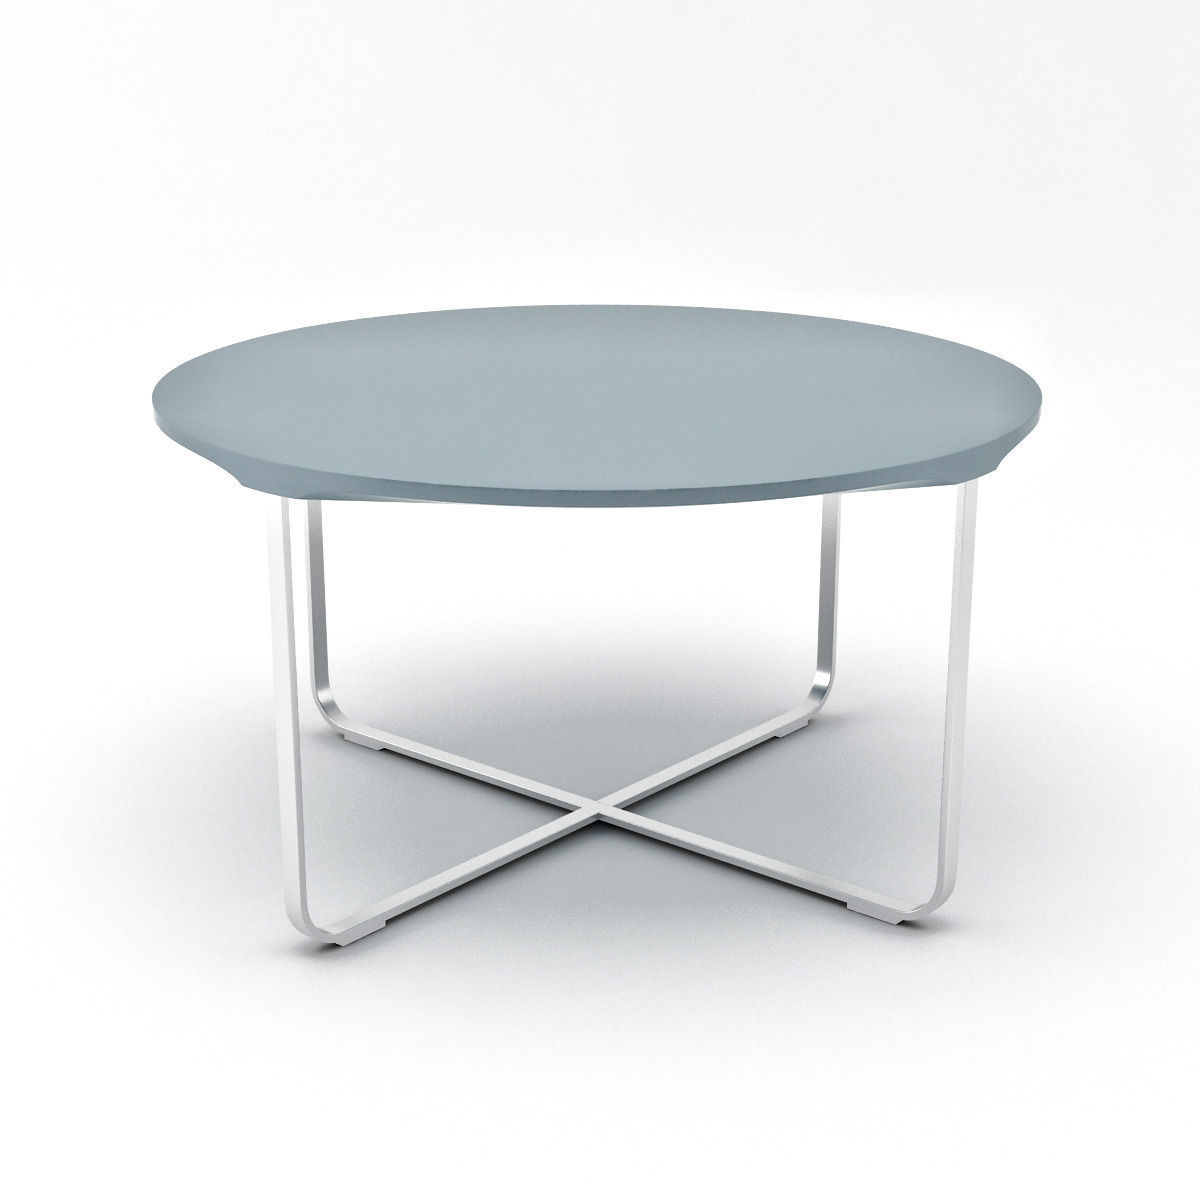 Round Silver Flint Coffee Table 3d Model Max